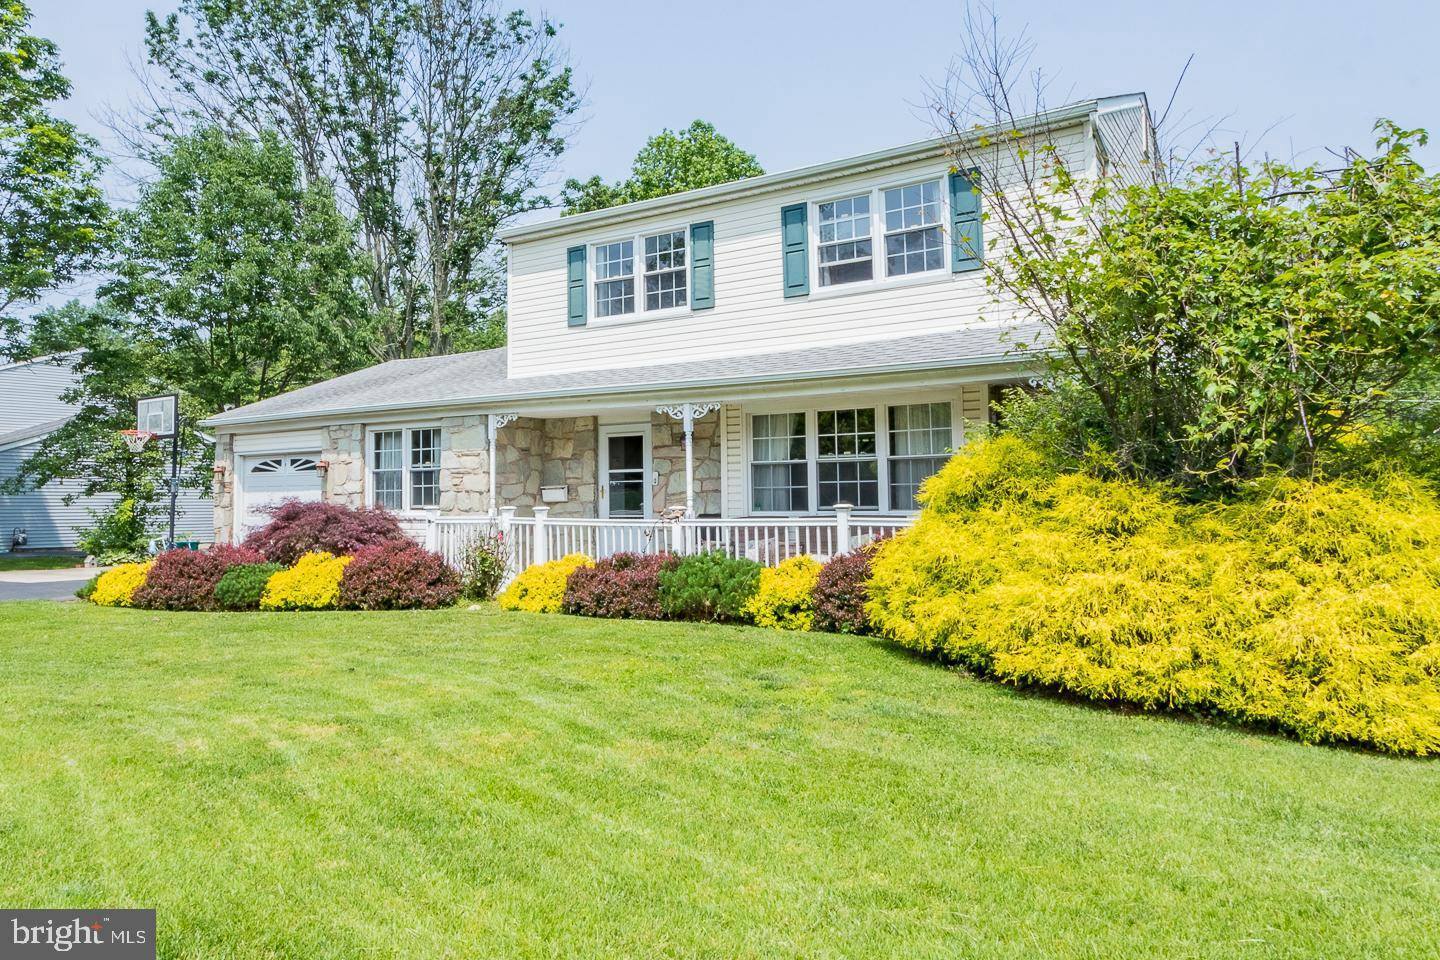 631 S OLDS BOULEVARD, FAIRLESS HILLS, PA 19030